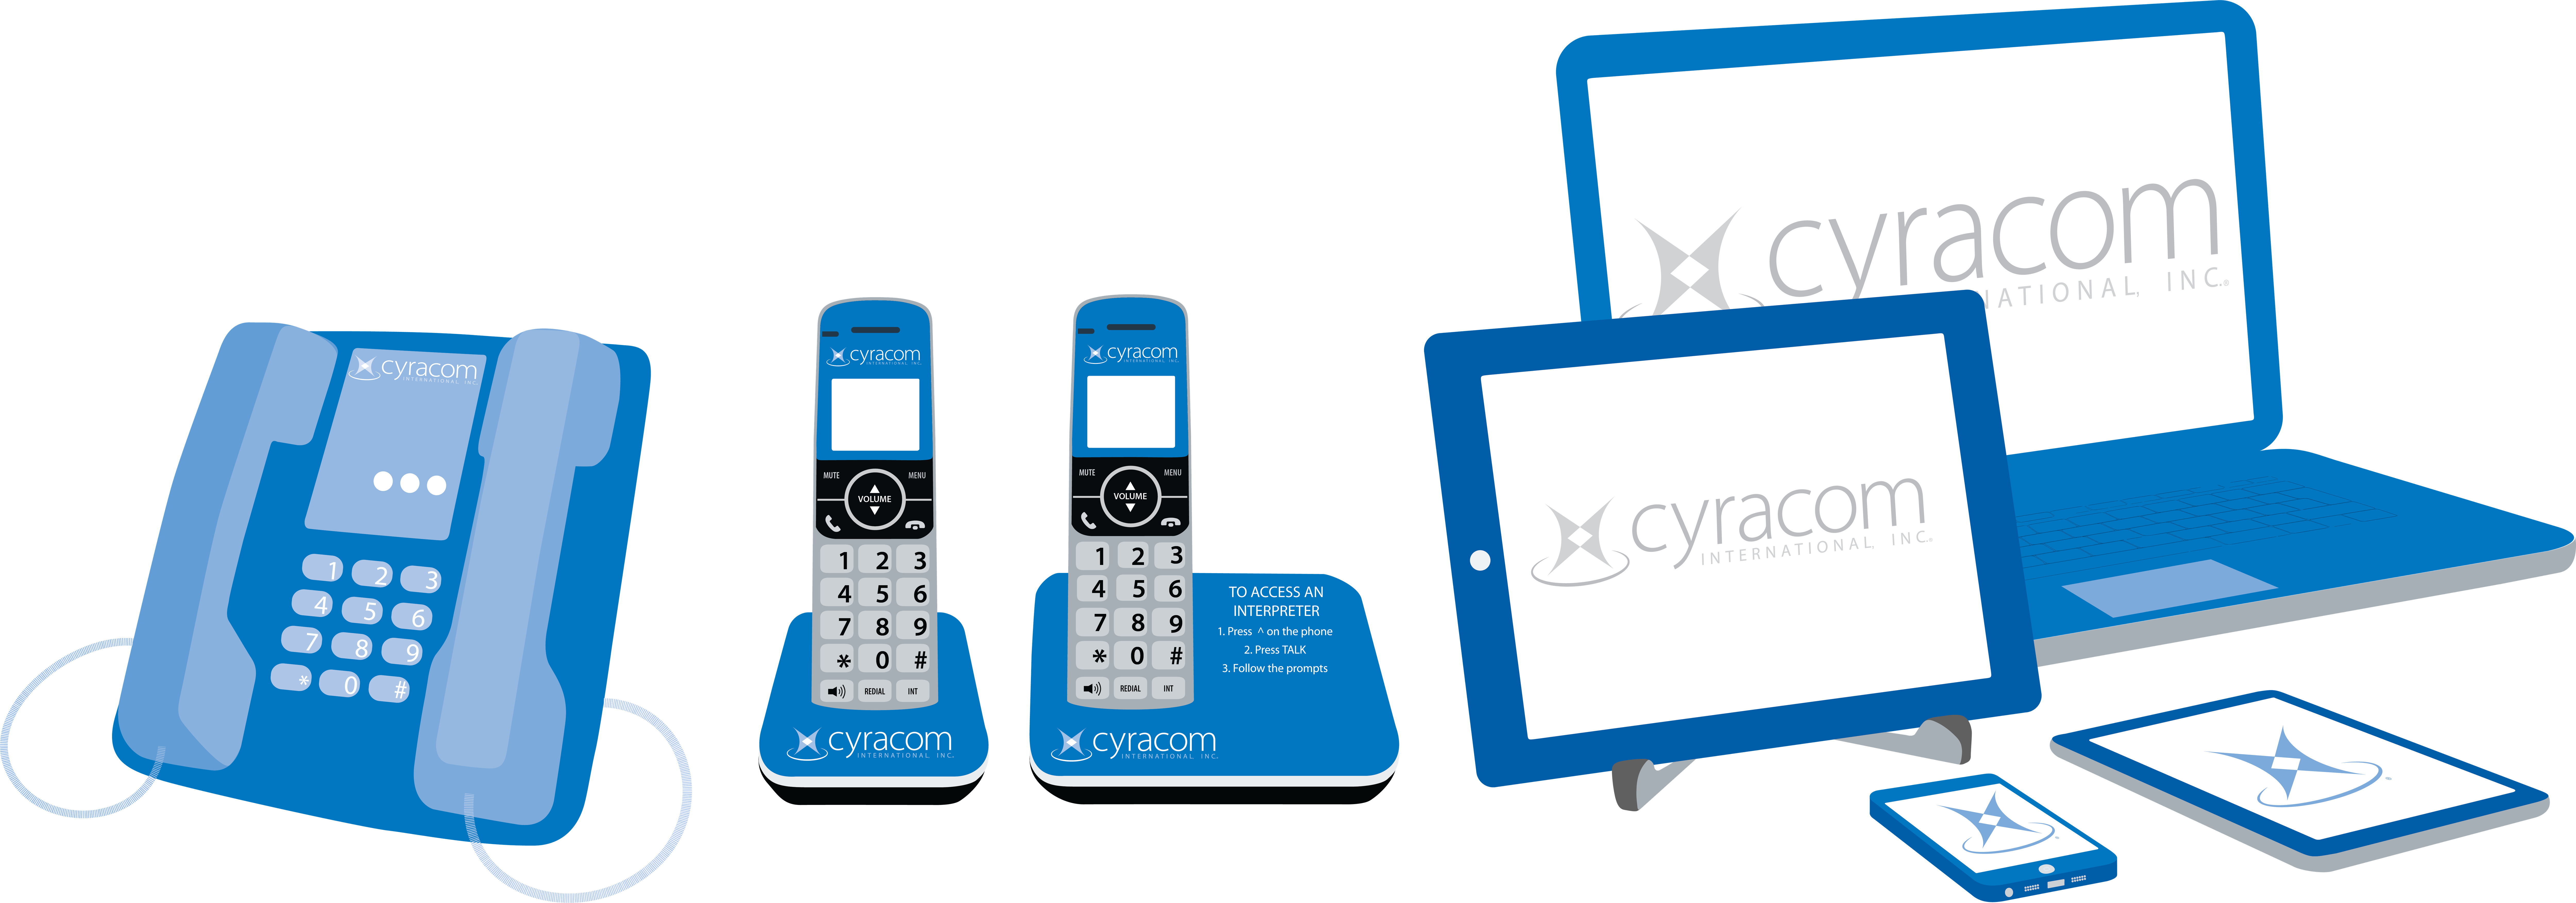 CyraCom Devices (All) - 2020